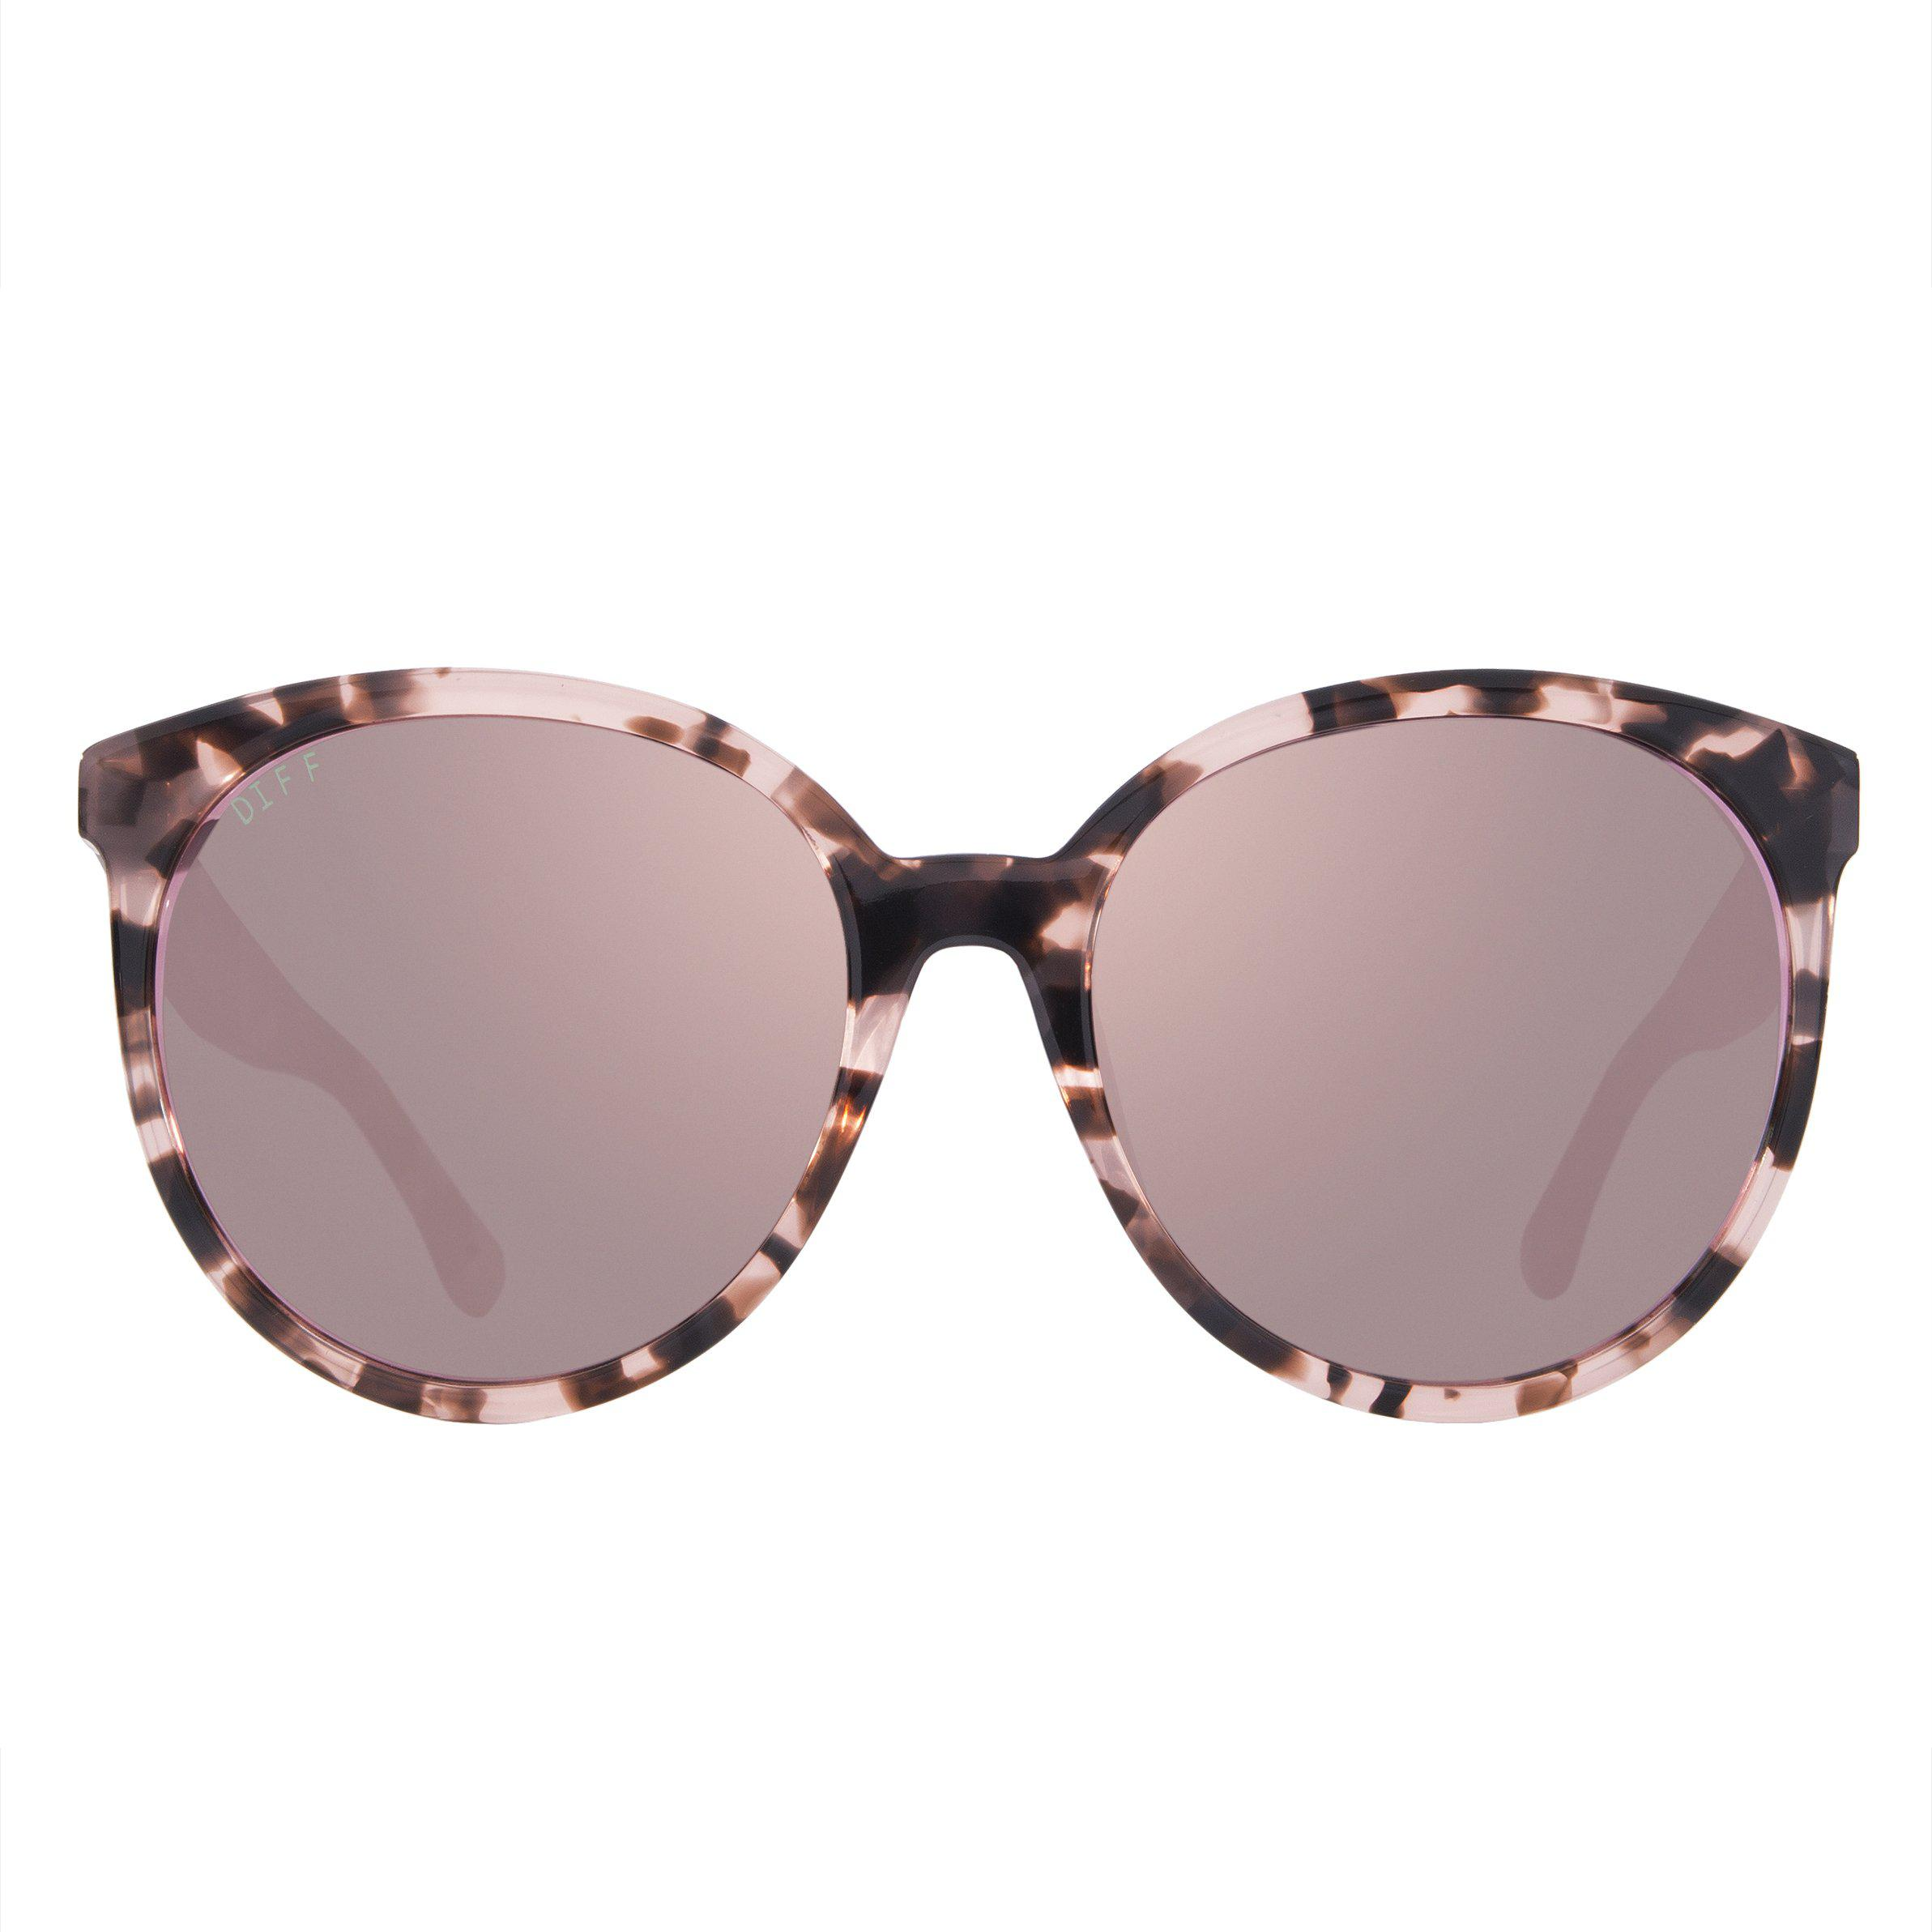 8939fede9c Lyst - DIFF Cosmo - Himalayan Tortoise + Taupe Flash + Polarized